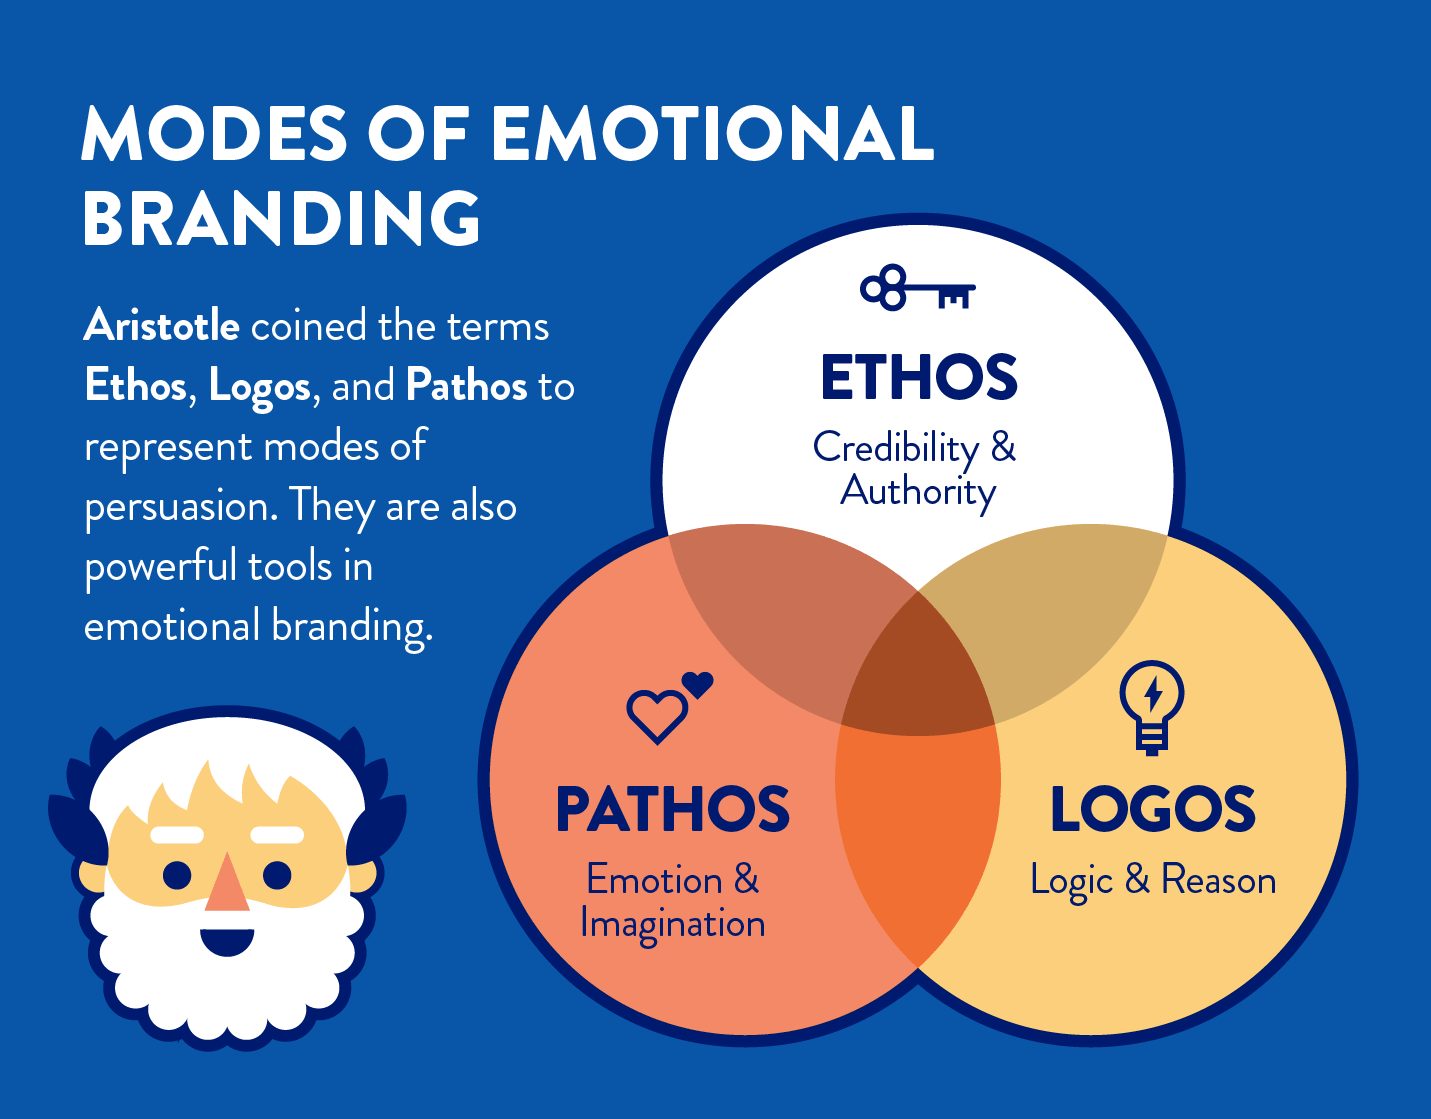 emotional branding compared to aristotles modes of persuasion ethos, logos, and pathos